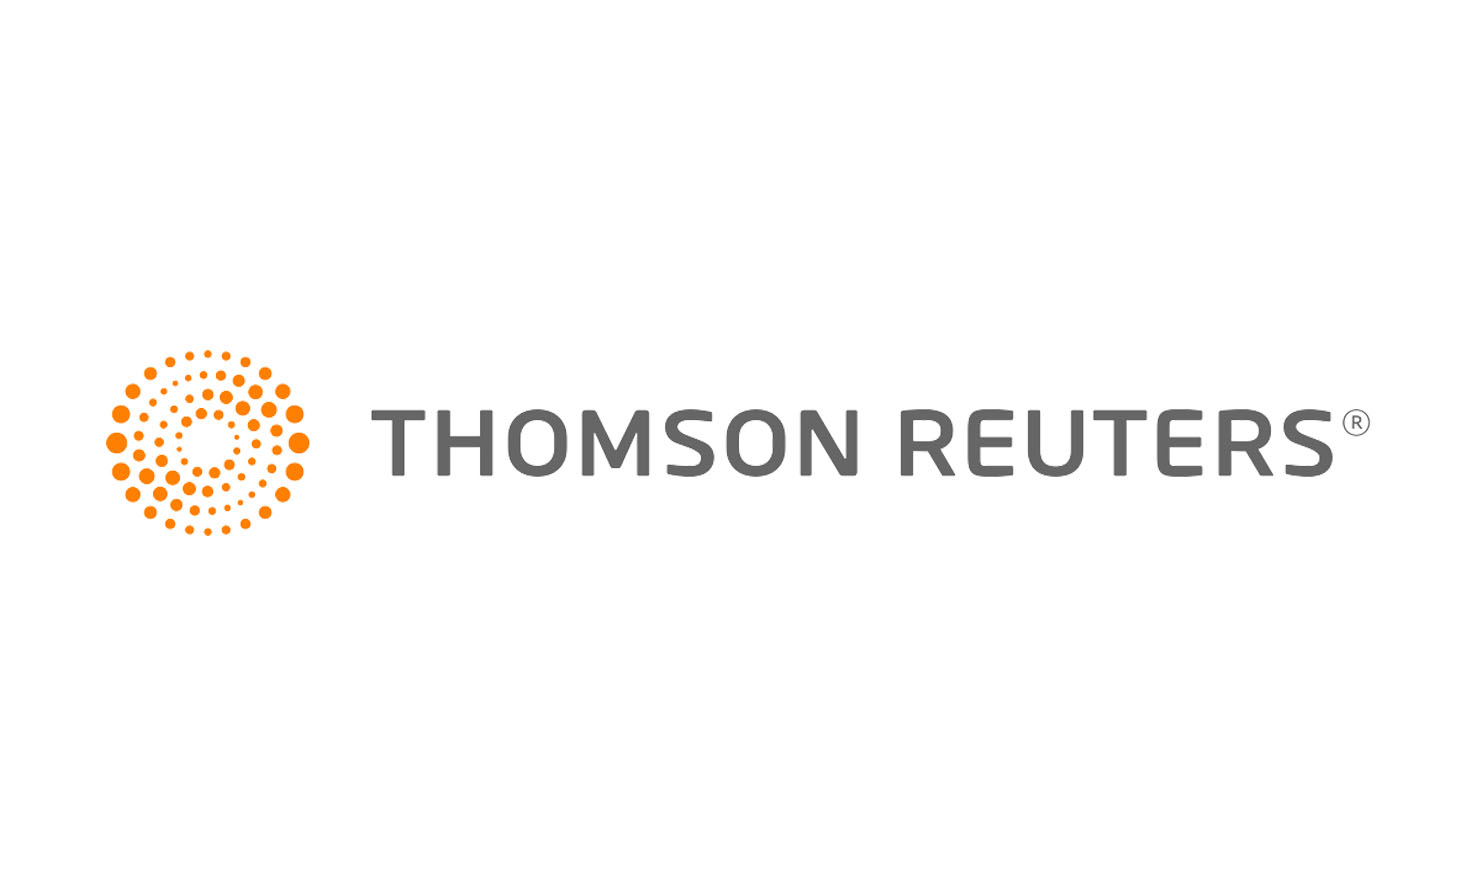 Thomson Reuters Holdings AG